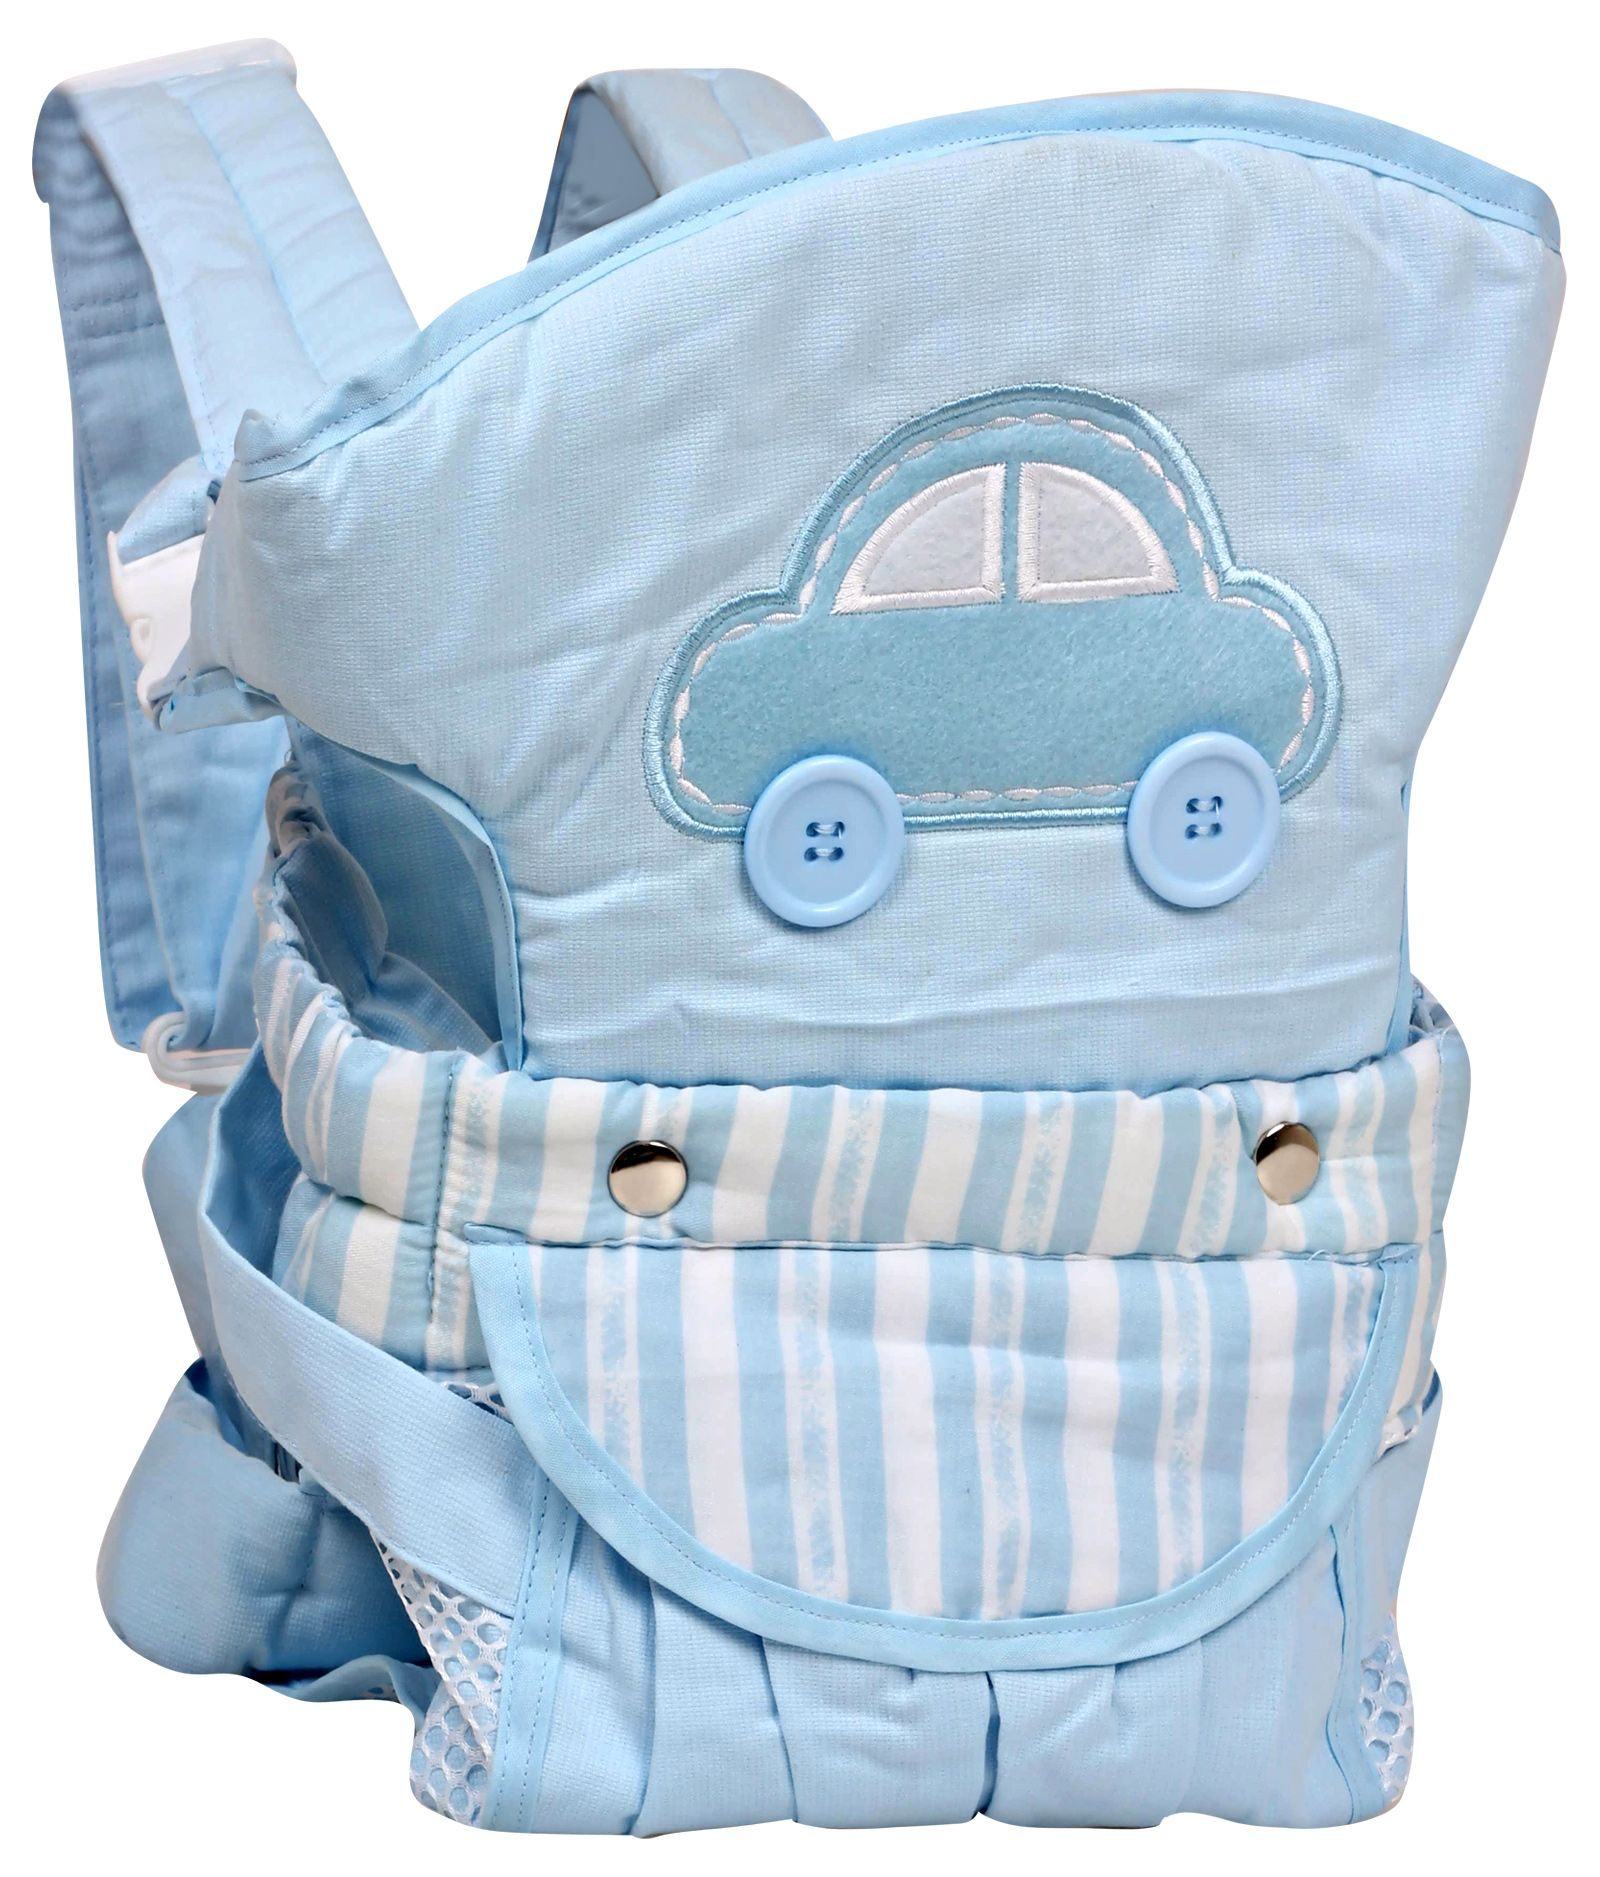 2 Way Car Print Baby Carrier - 003